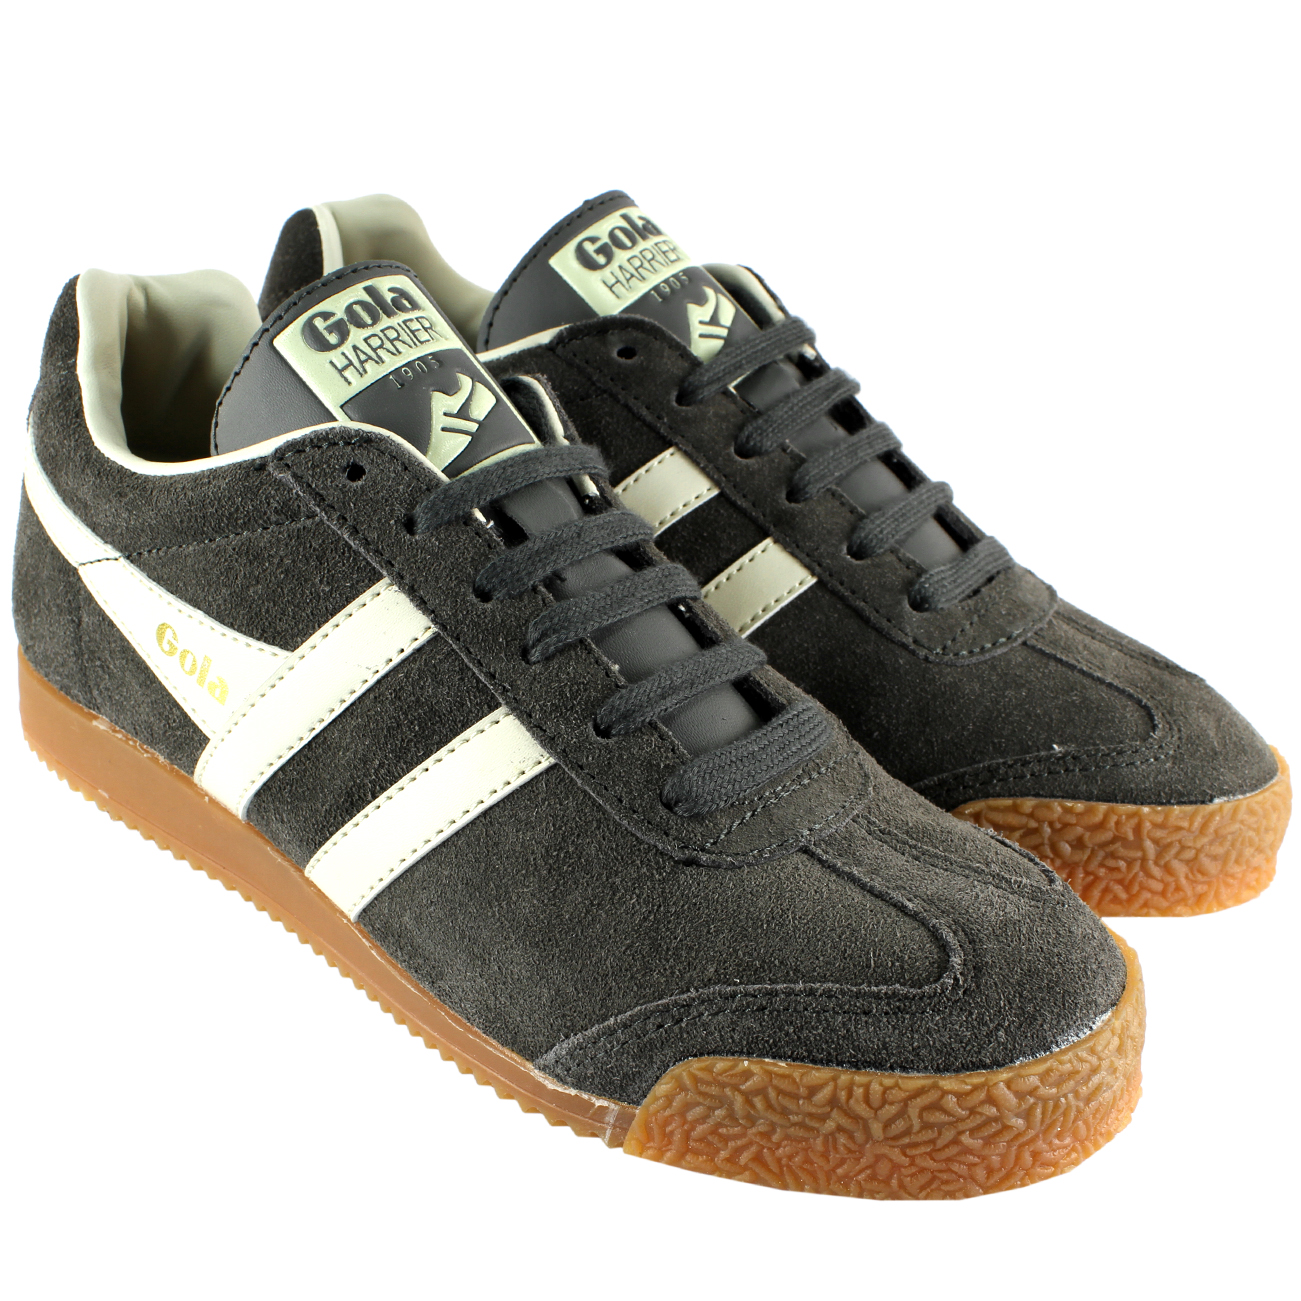 Gola Harrier Low Top Suede Trainers